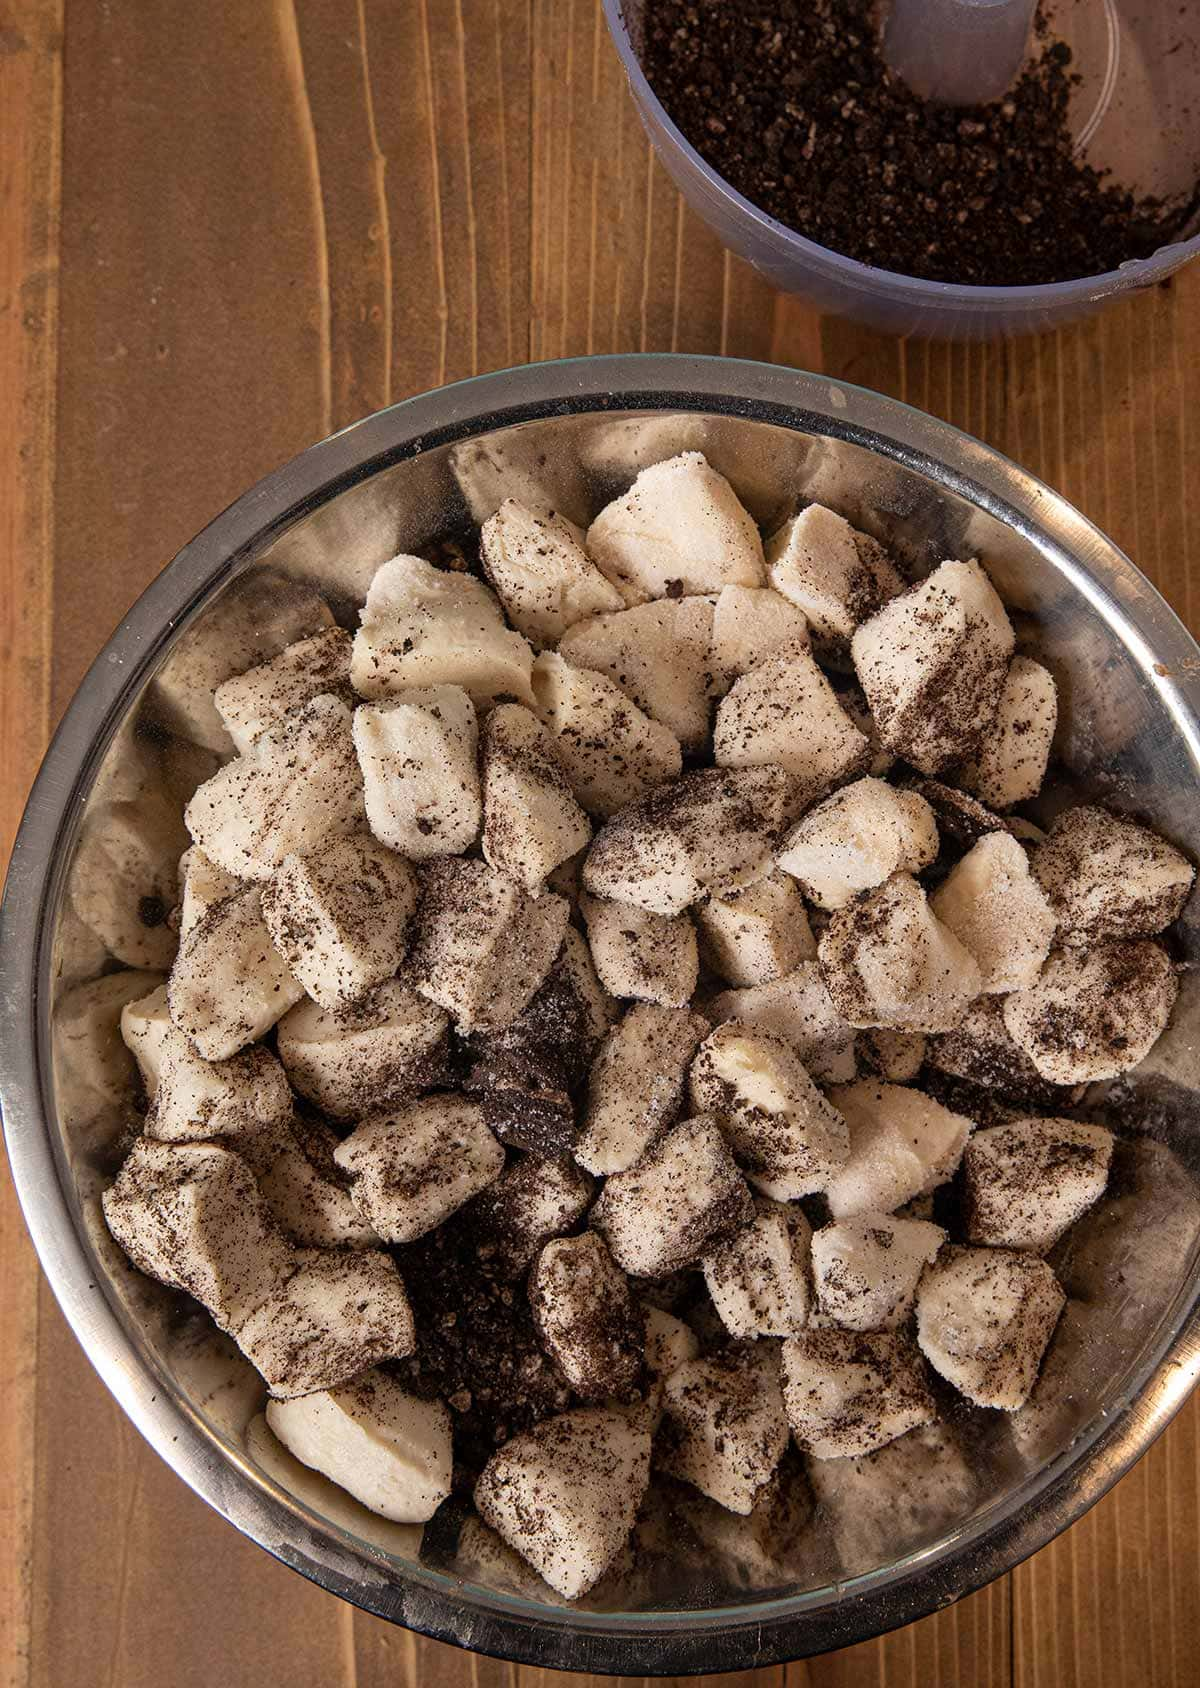 Oreo Monkey Bread dough in mixing bowl